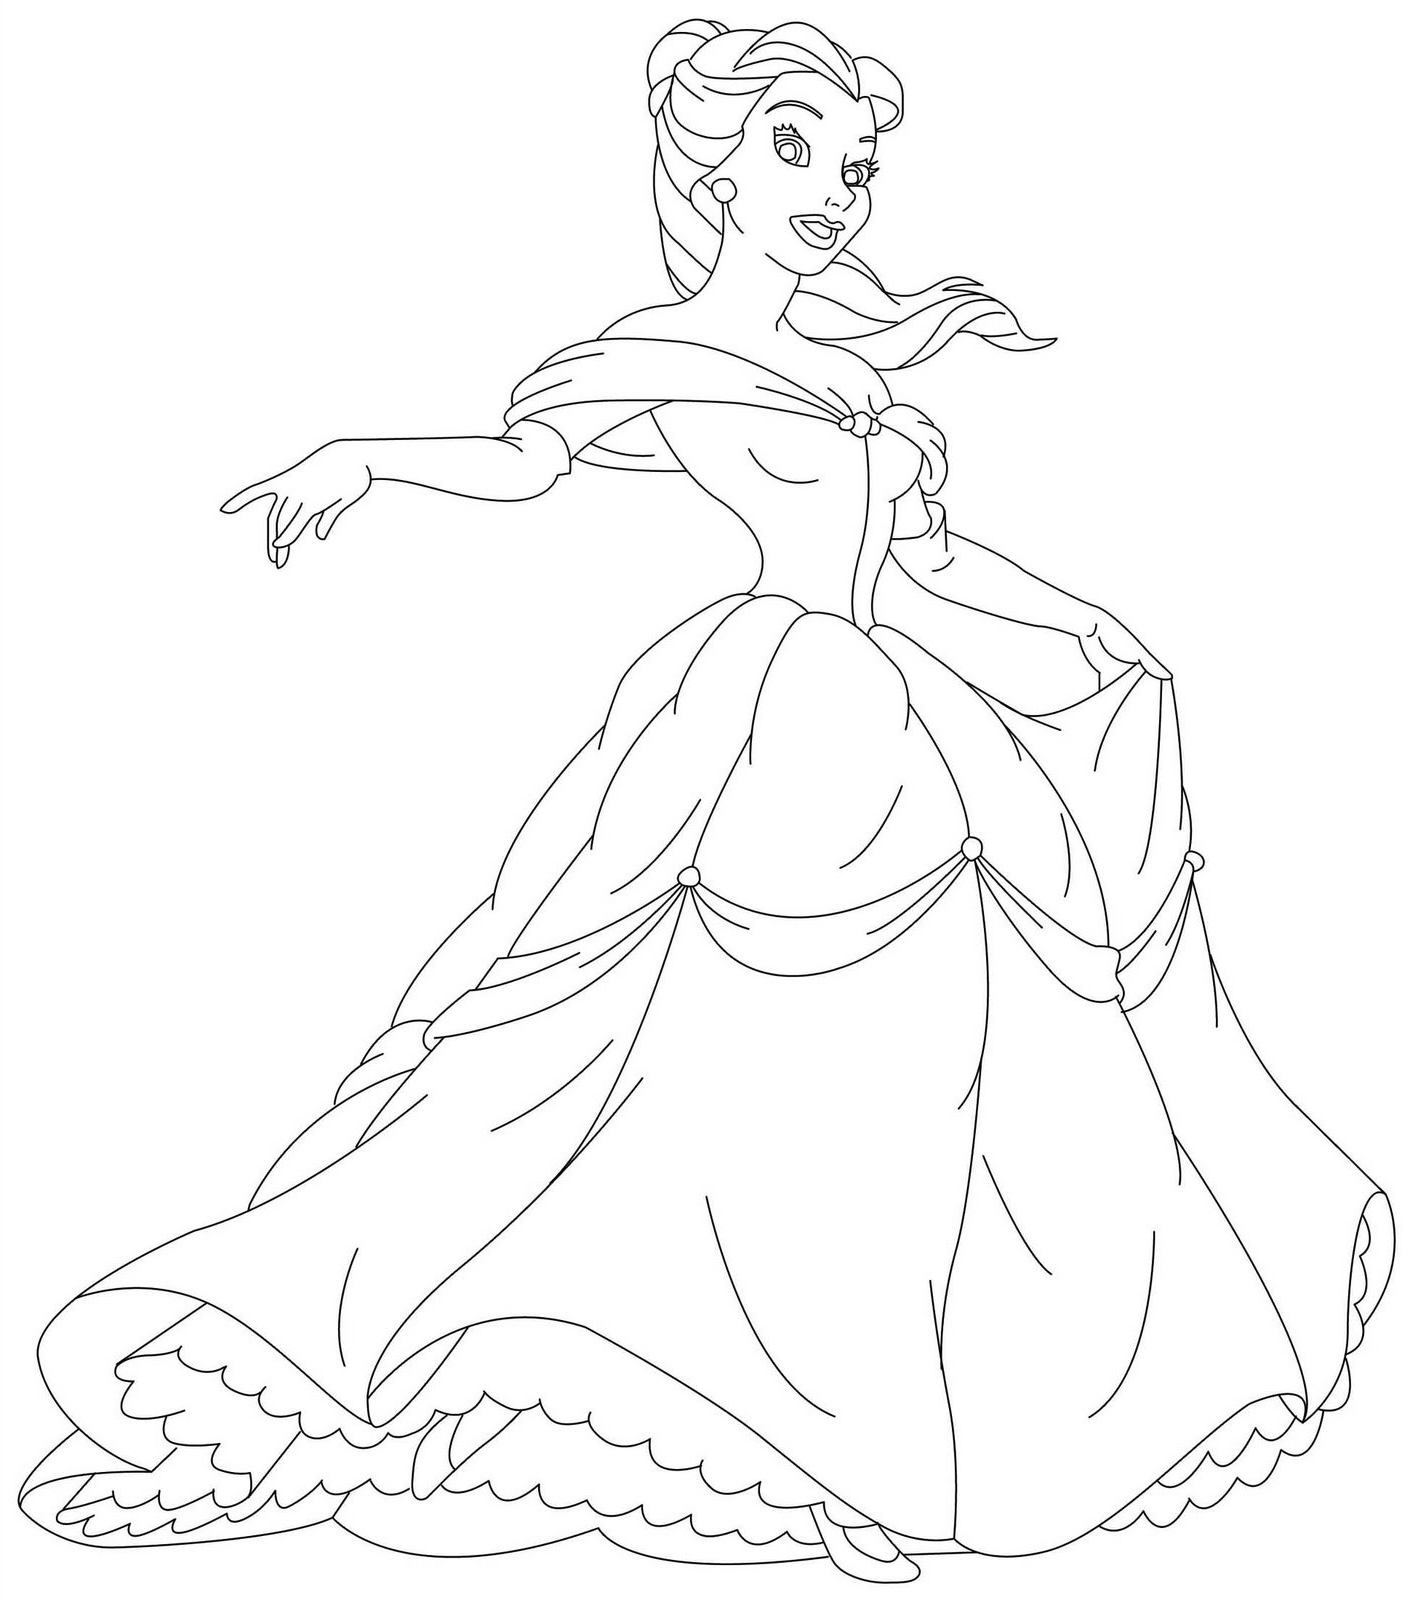 Free Printable Disney Princess Coloring Pages For Kids Princess Picture To Color Free Coloring Sheets